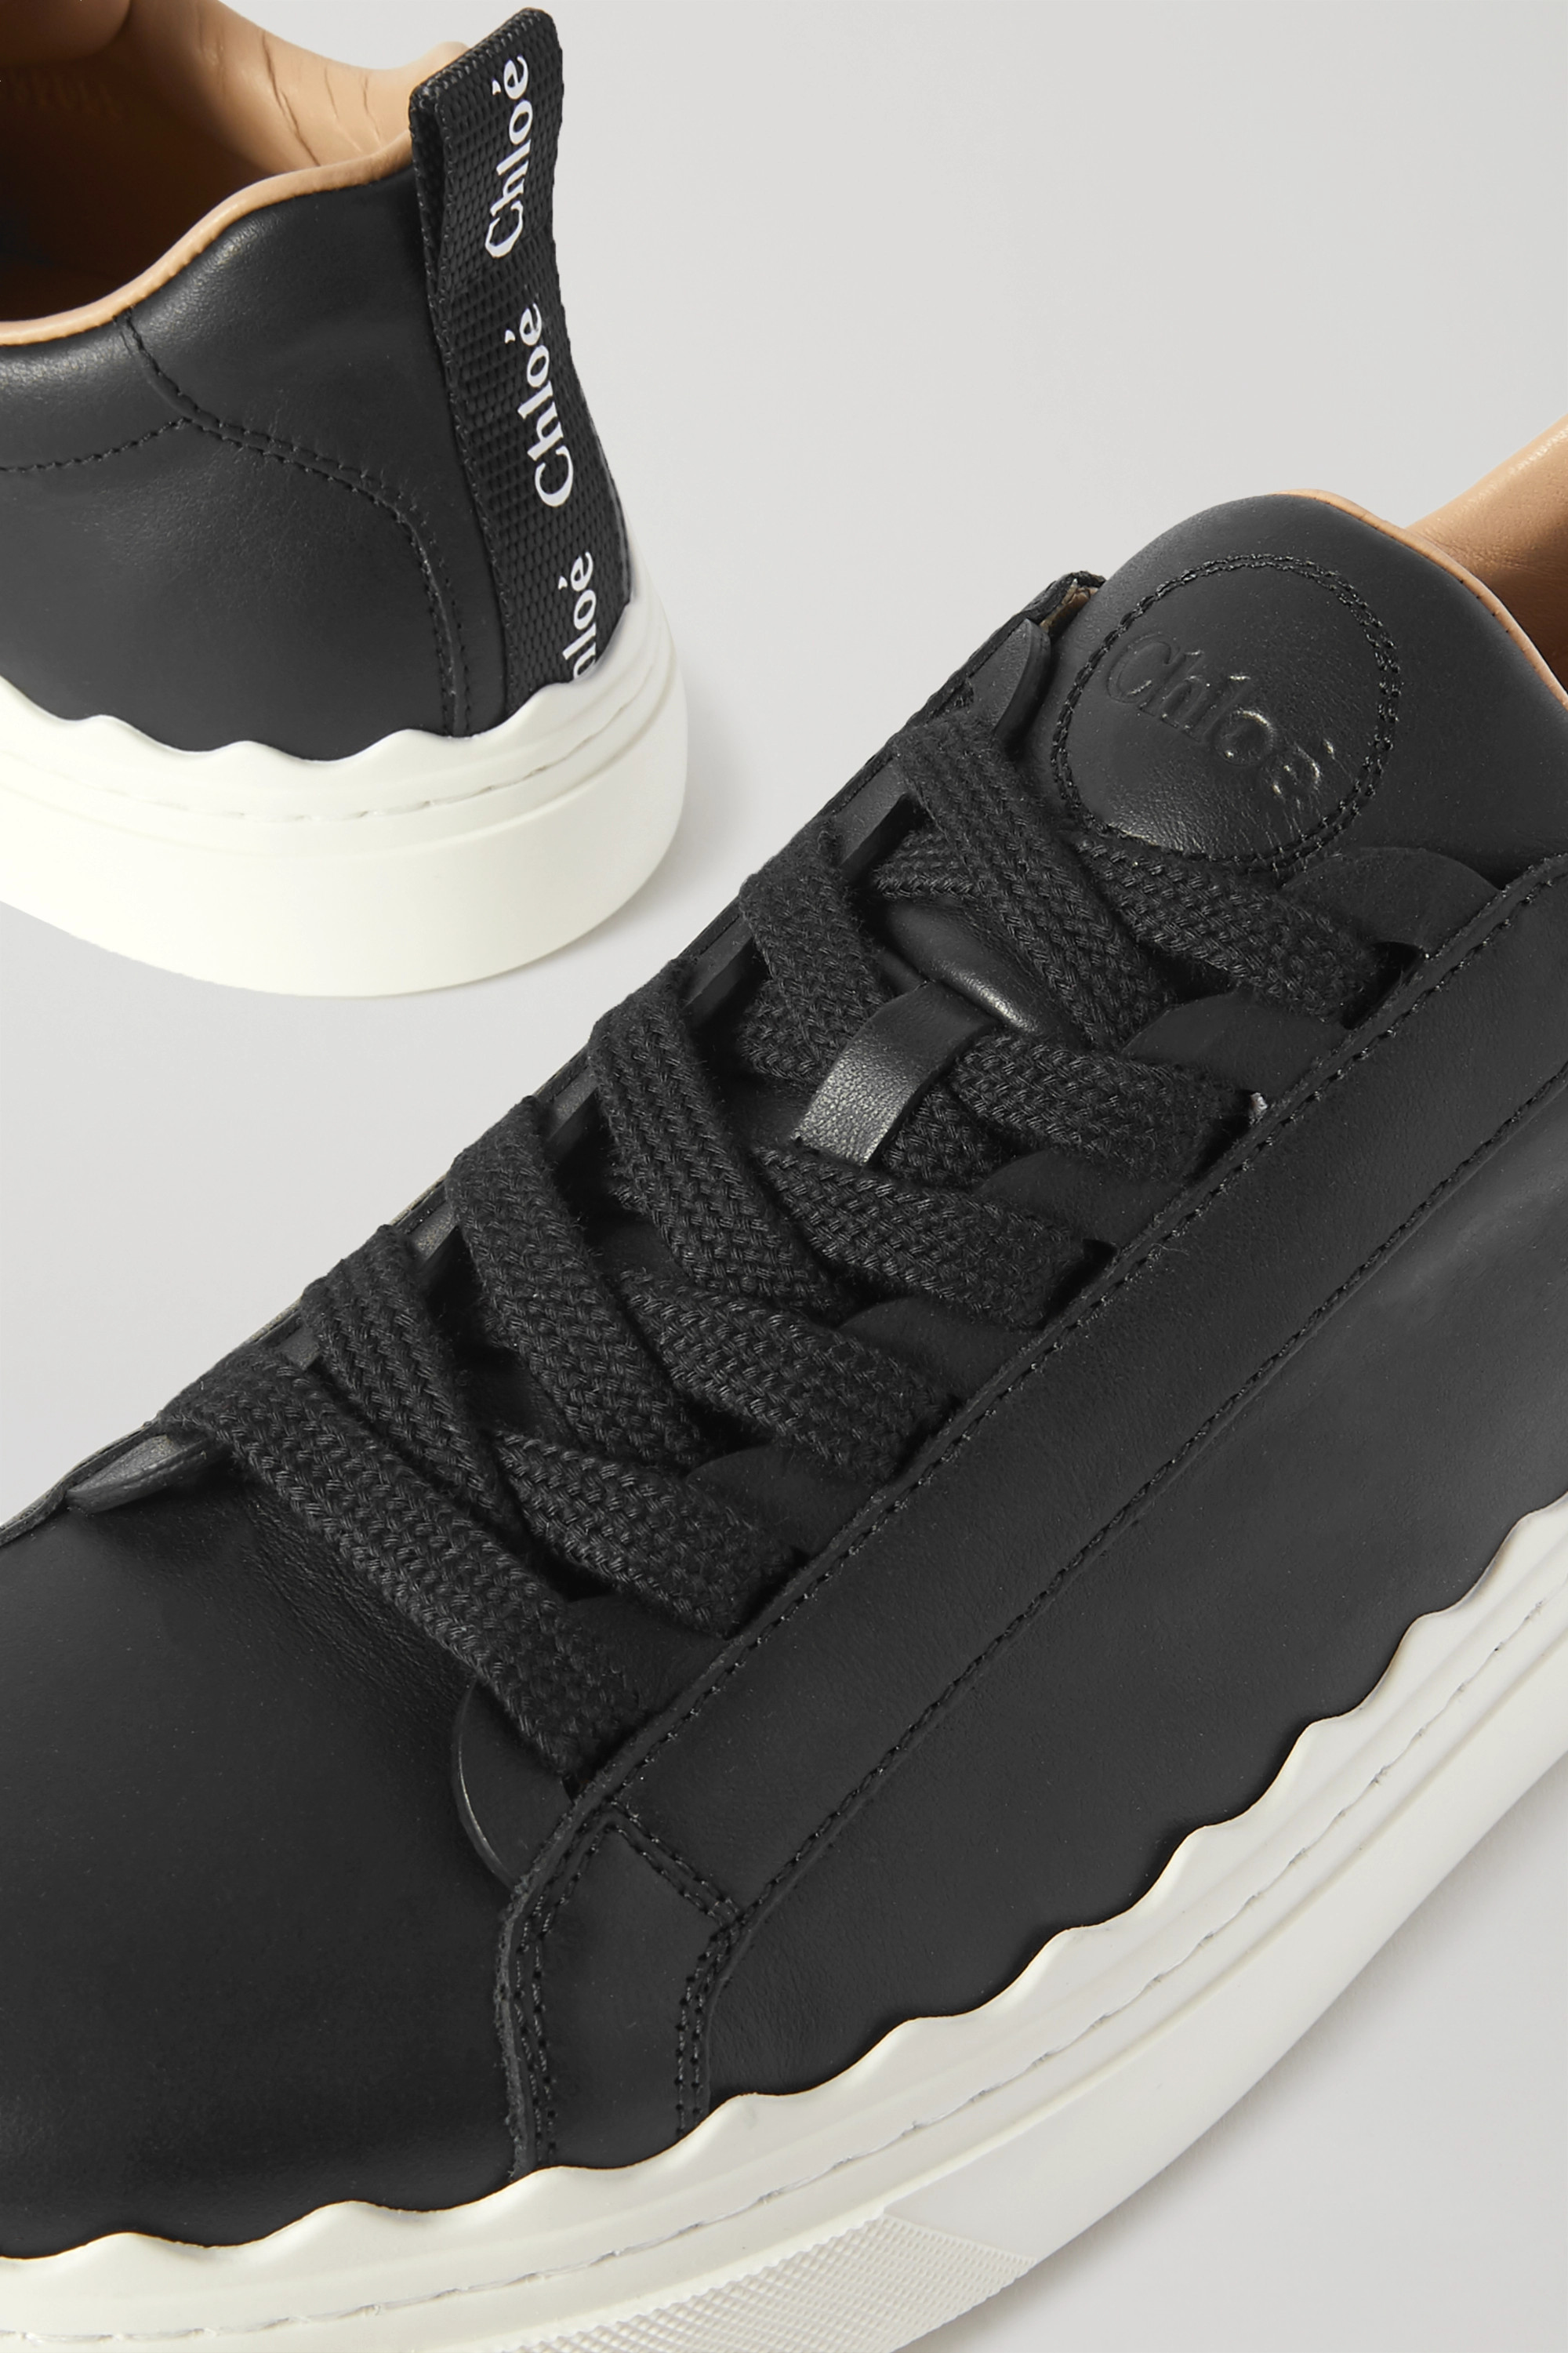 Chloé Lauren scalloped leather sneakers